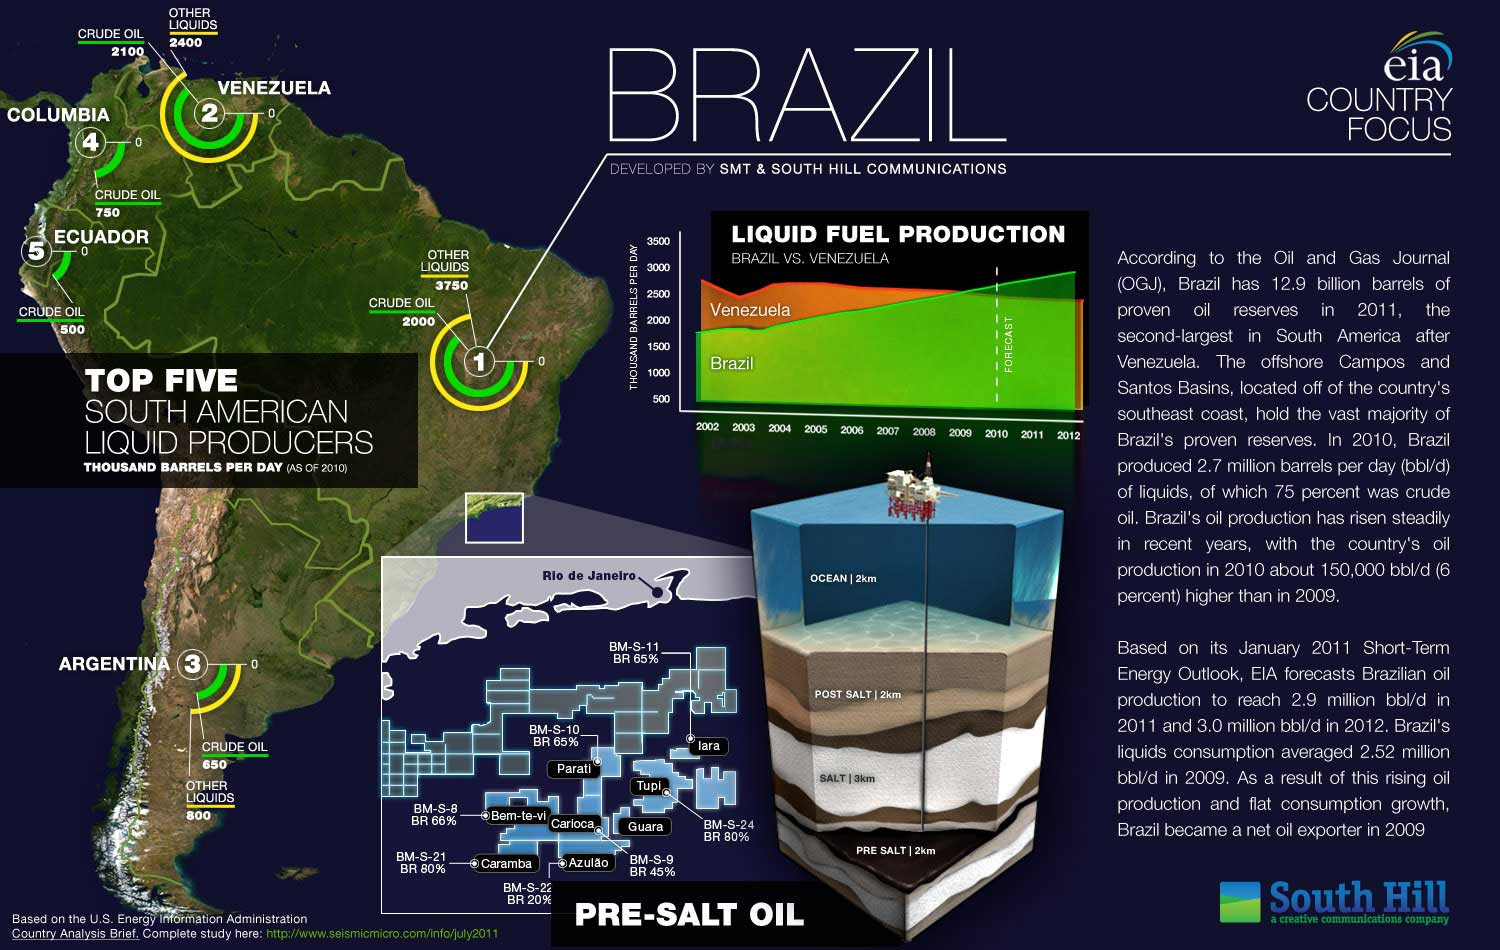 Top 5 Southern American Liquid Producers Infographic